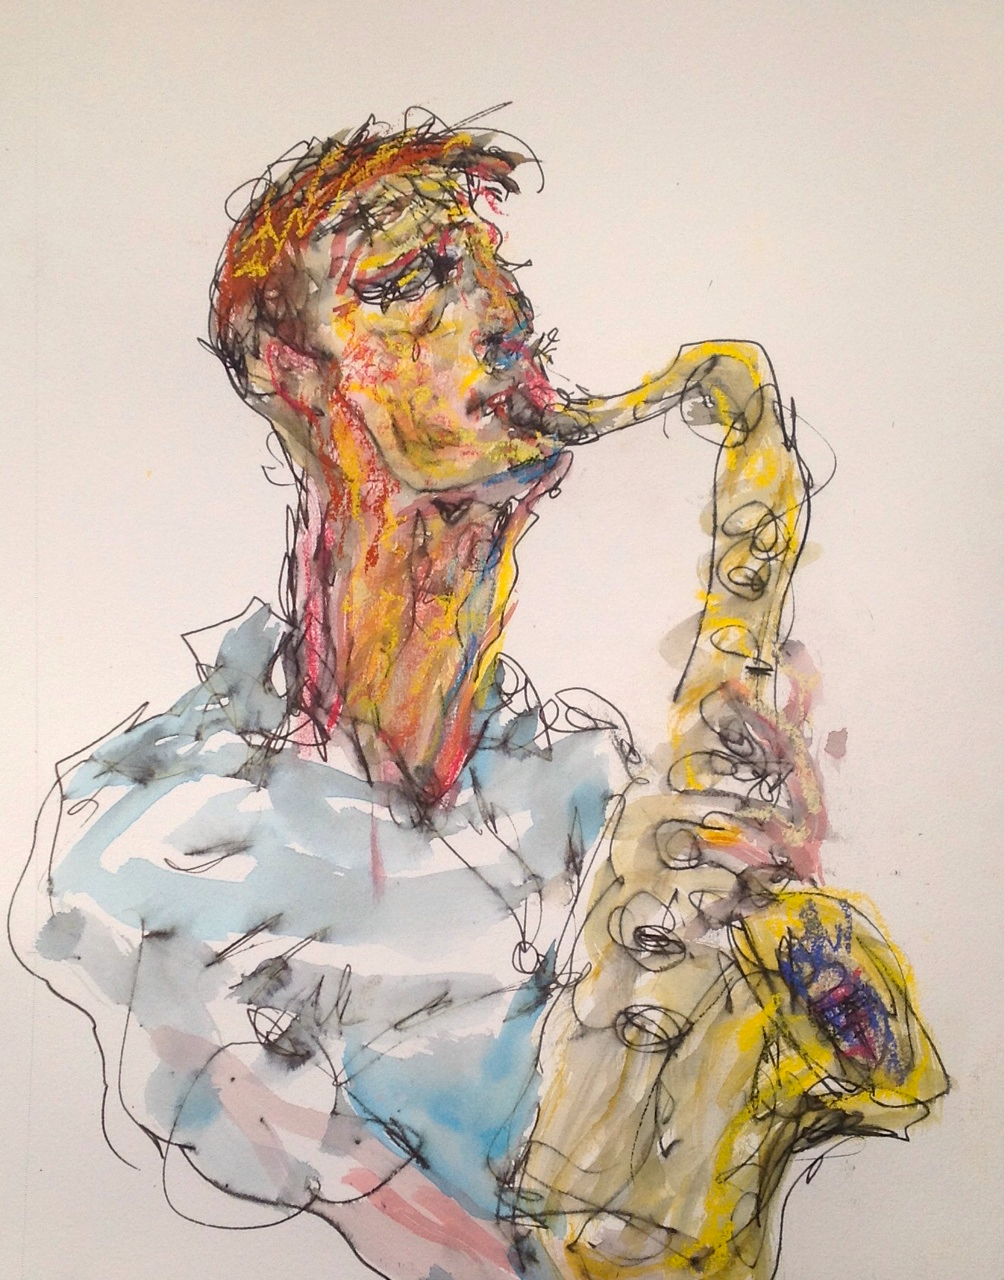 mountvision: Sax player of the terrific band Emefe drawn at Joe's Pub on November 19th when artists were invited to come and draw Emefe and Balthrop, Alabama, a fantastic night of community.